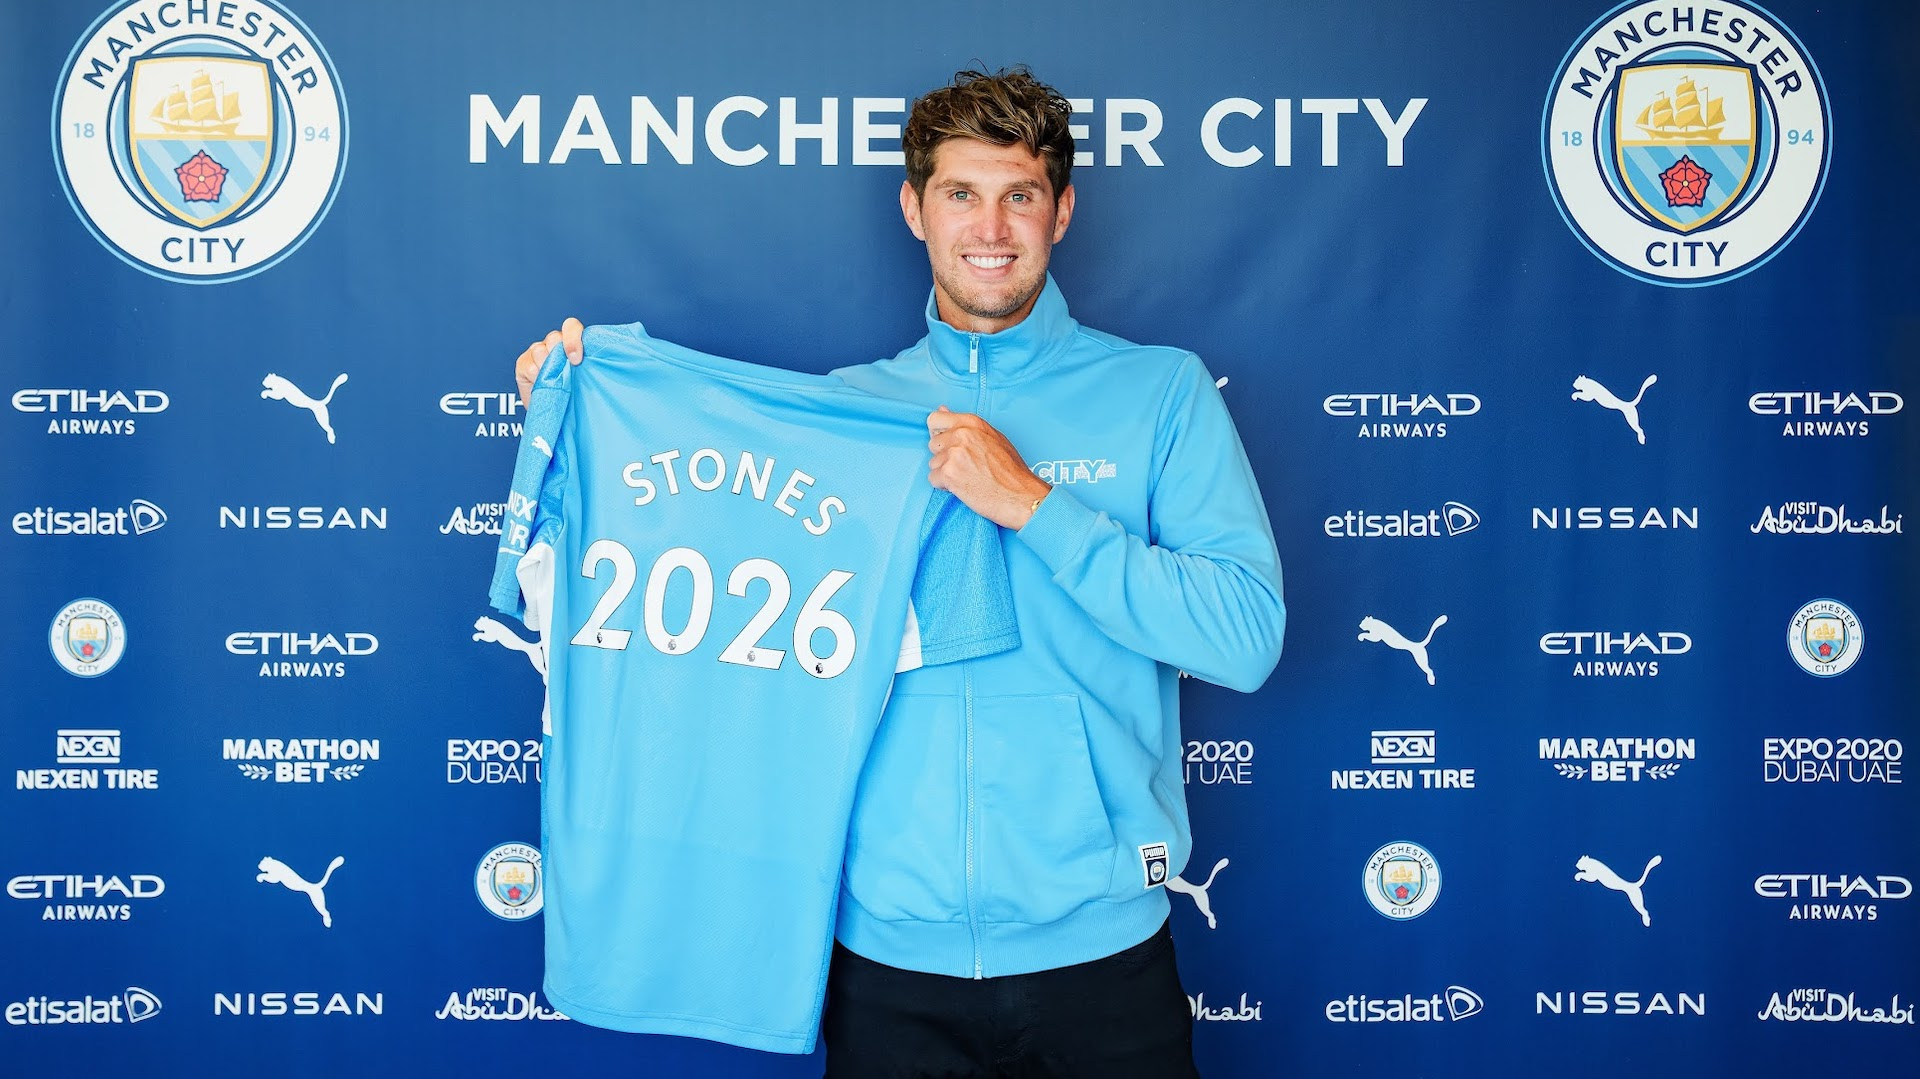 Stones signs new five-year contract with Manchester City